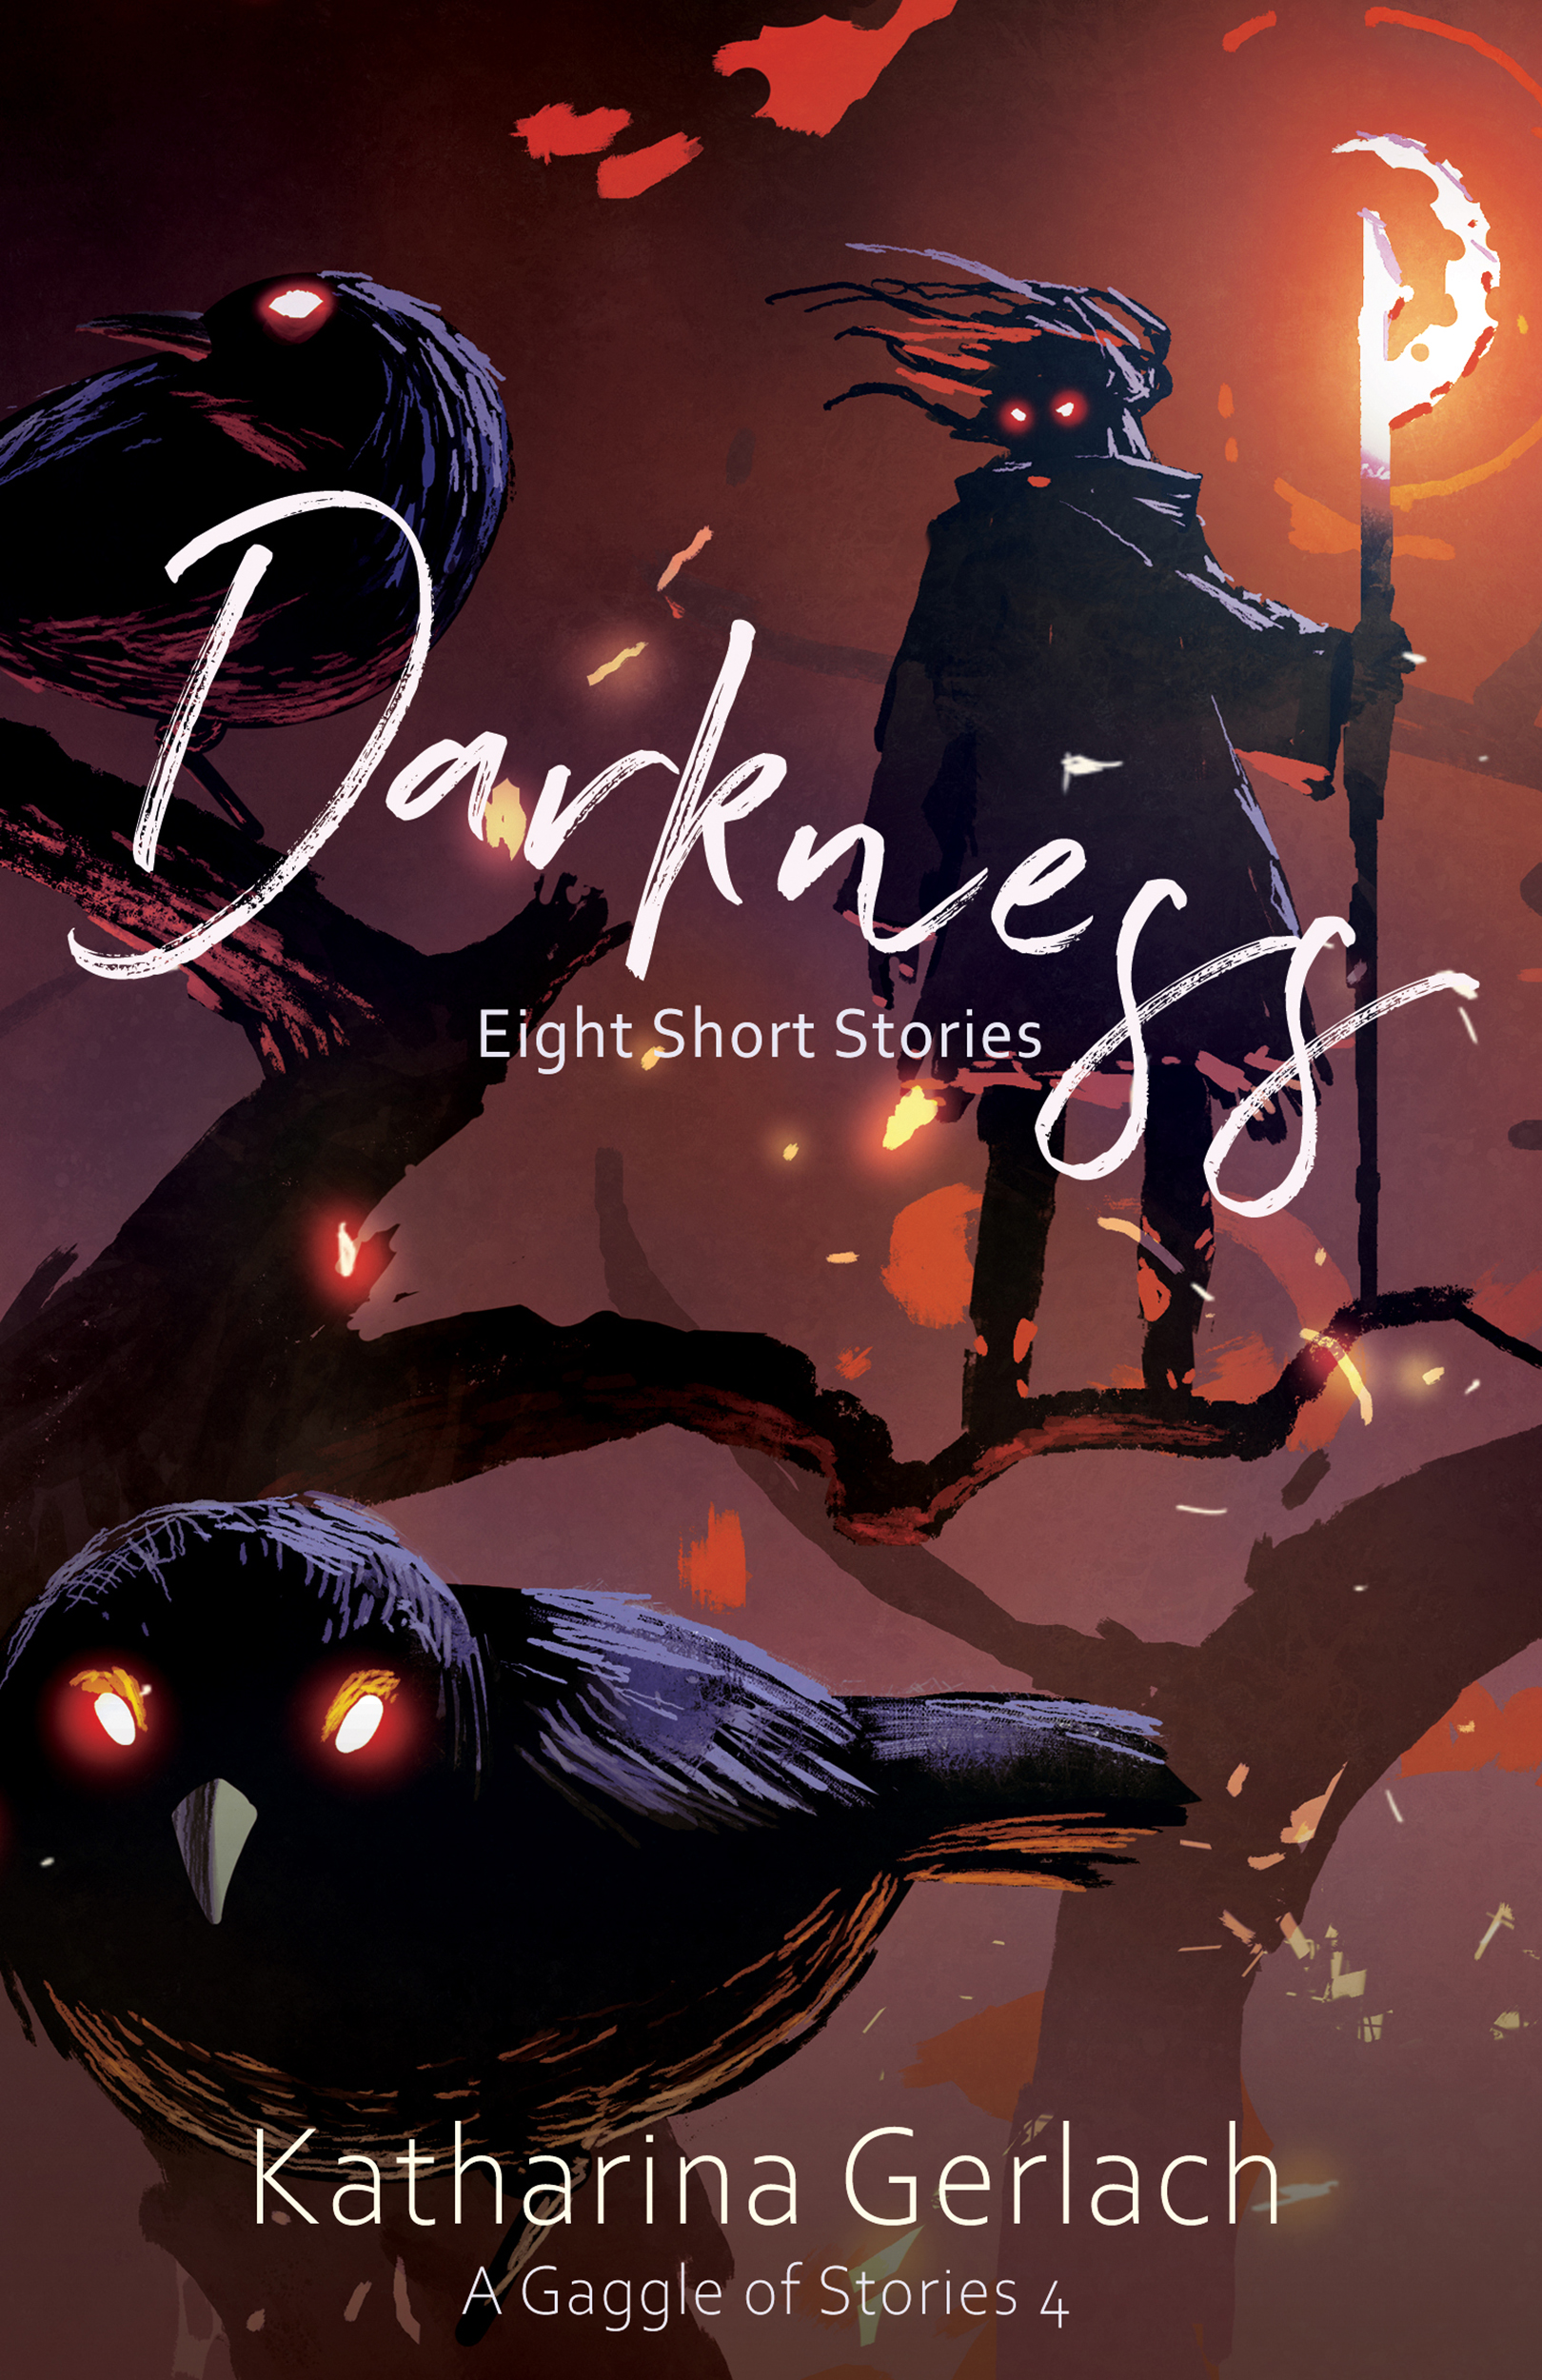 A Gaggle of Stories 4: Darkness